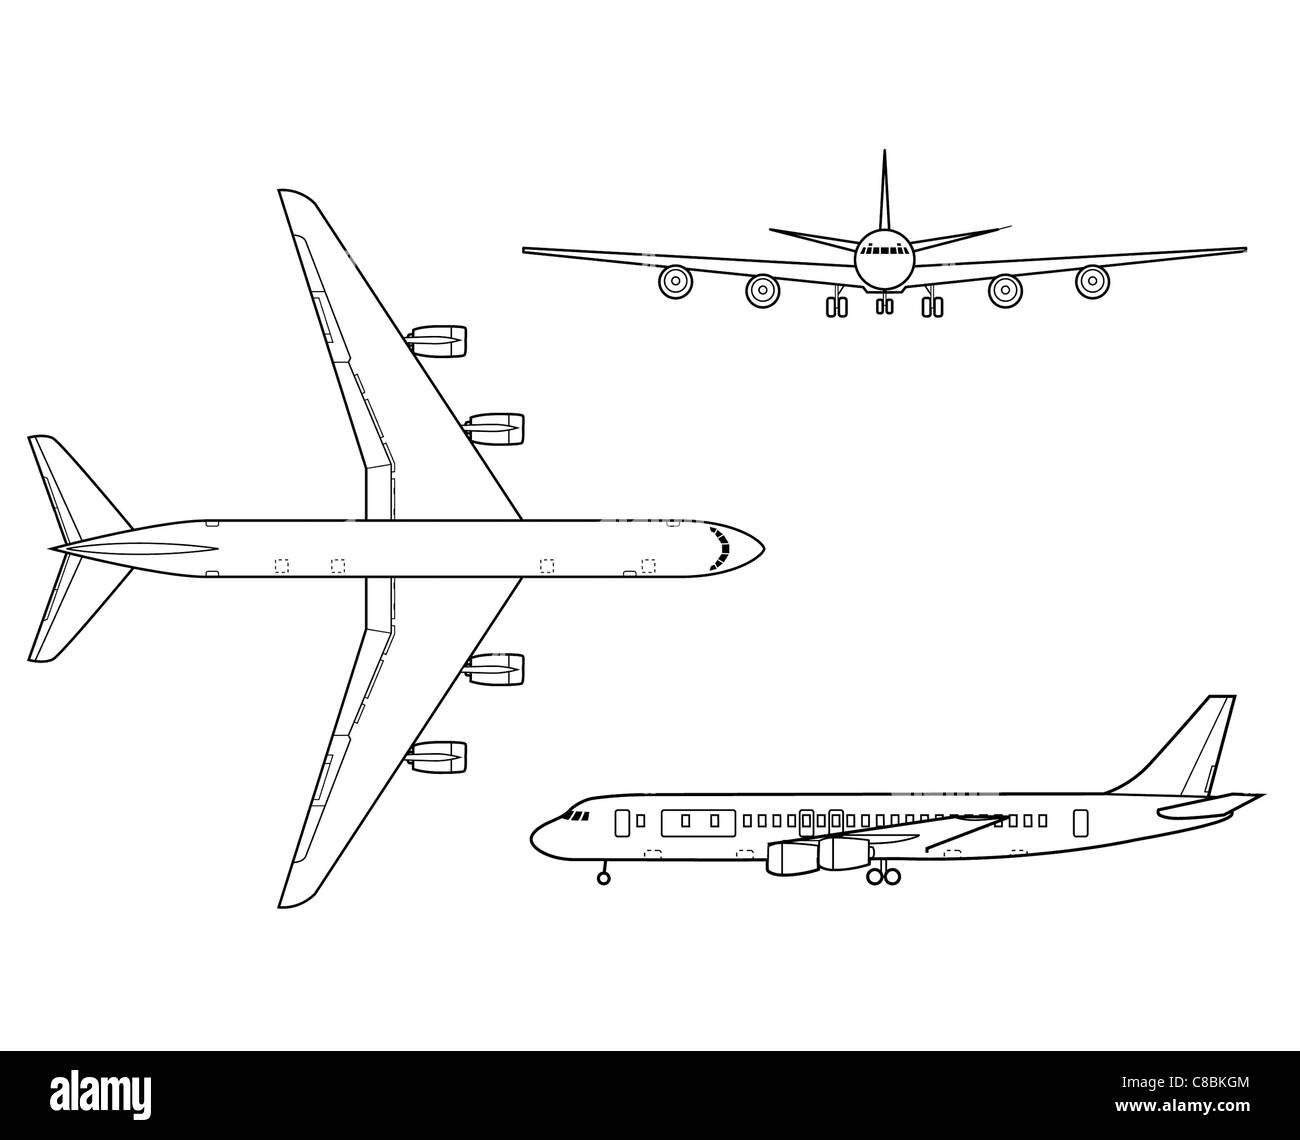 Line Drawing Airplane : Nice commercial airliner fly by wire drawing photos